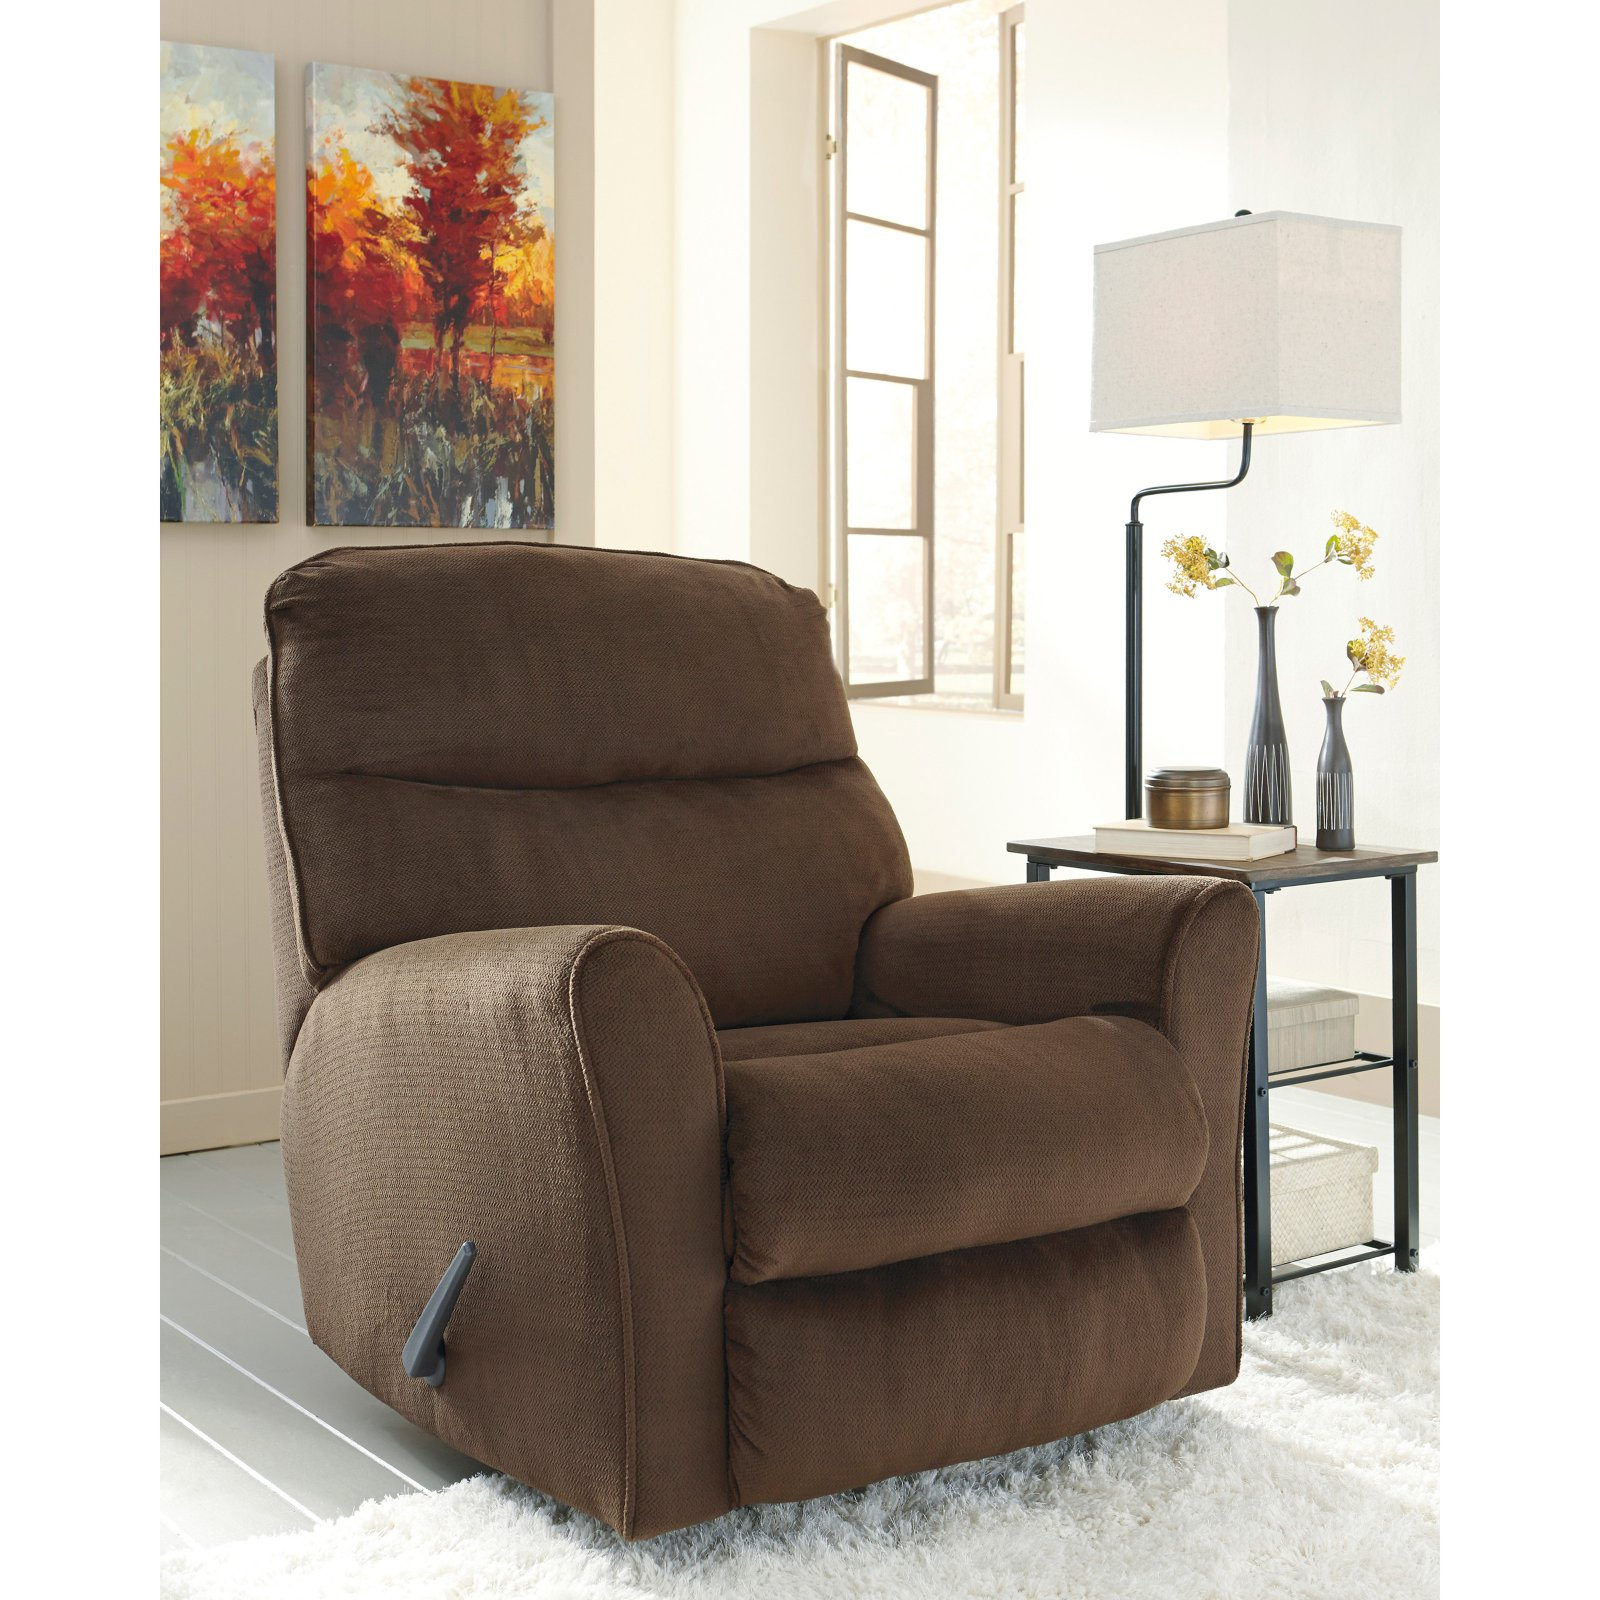 Flash Furniture Signature Design by Ashley Cossette Rocker Recliner in Chocolate Fabric